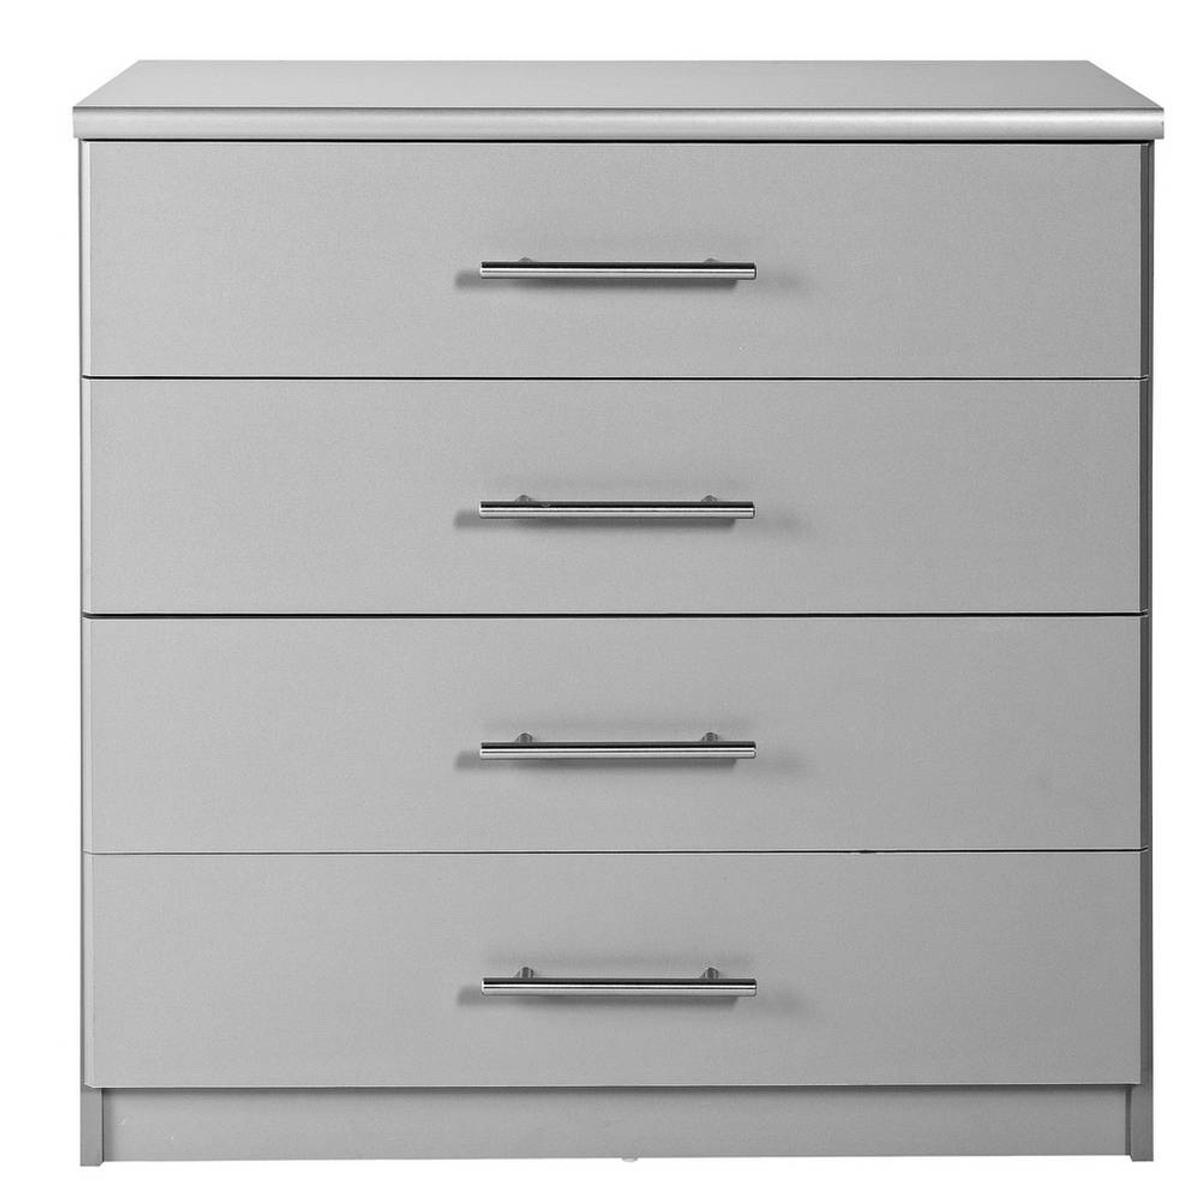 Argos Silver Chest Of Drawers Grey In Se11 London For 65 00 For Sale Shpock